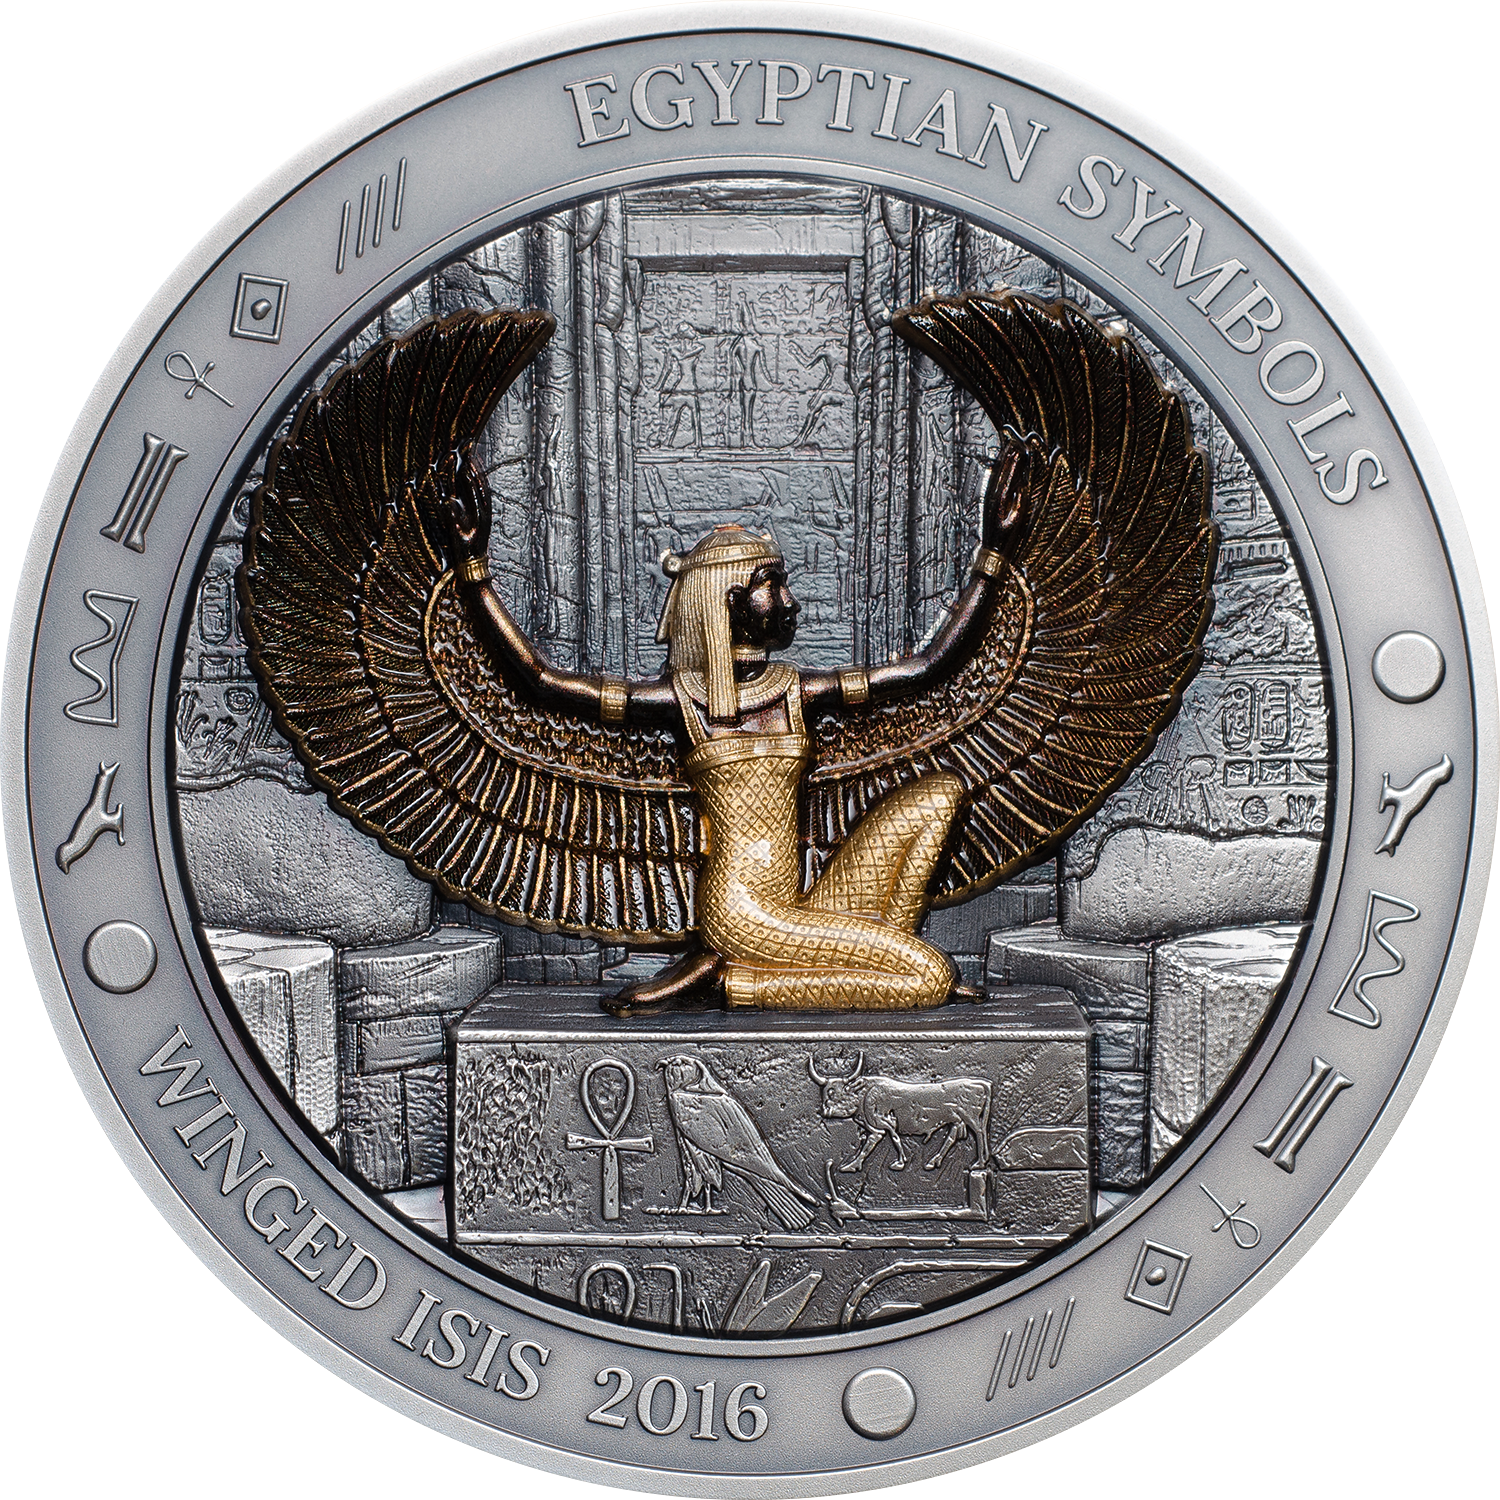 Winged Isis award winning silver coin at coin constellation 2017